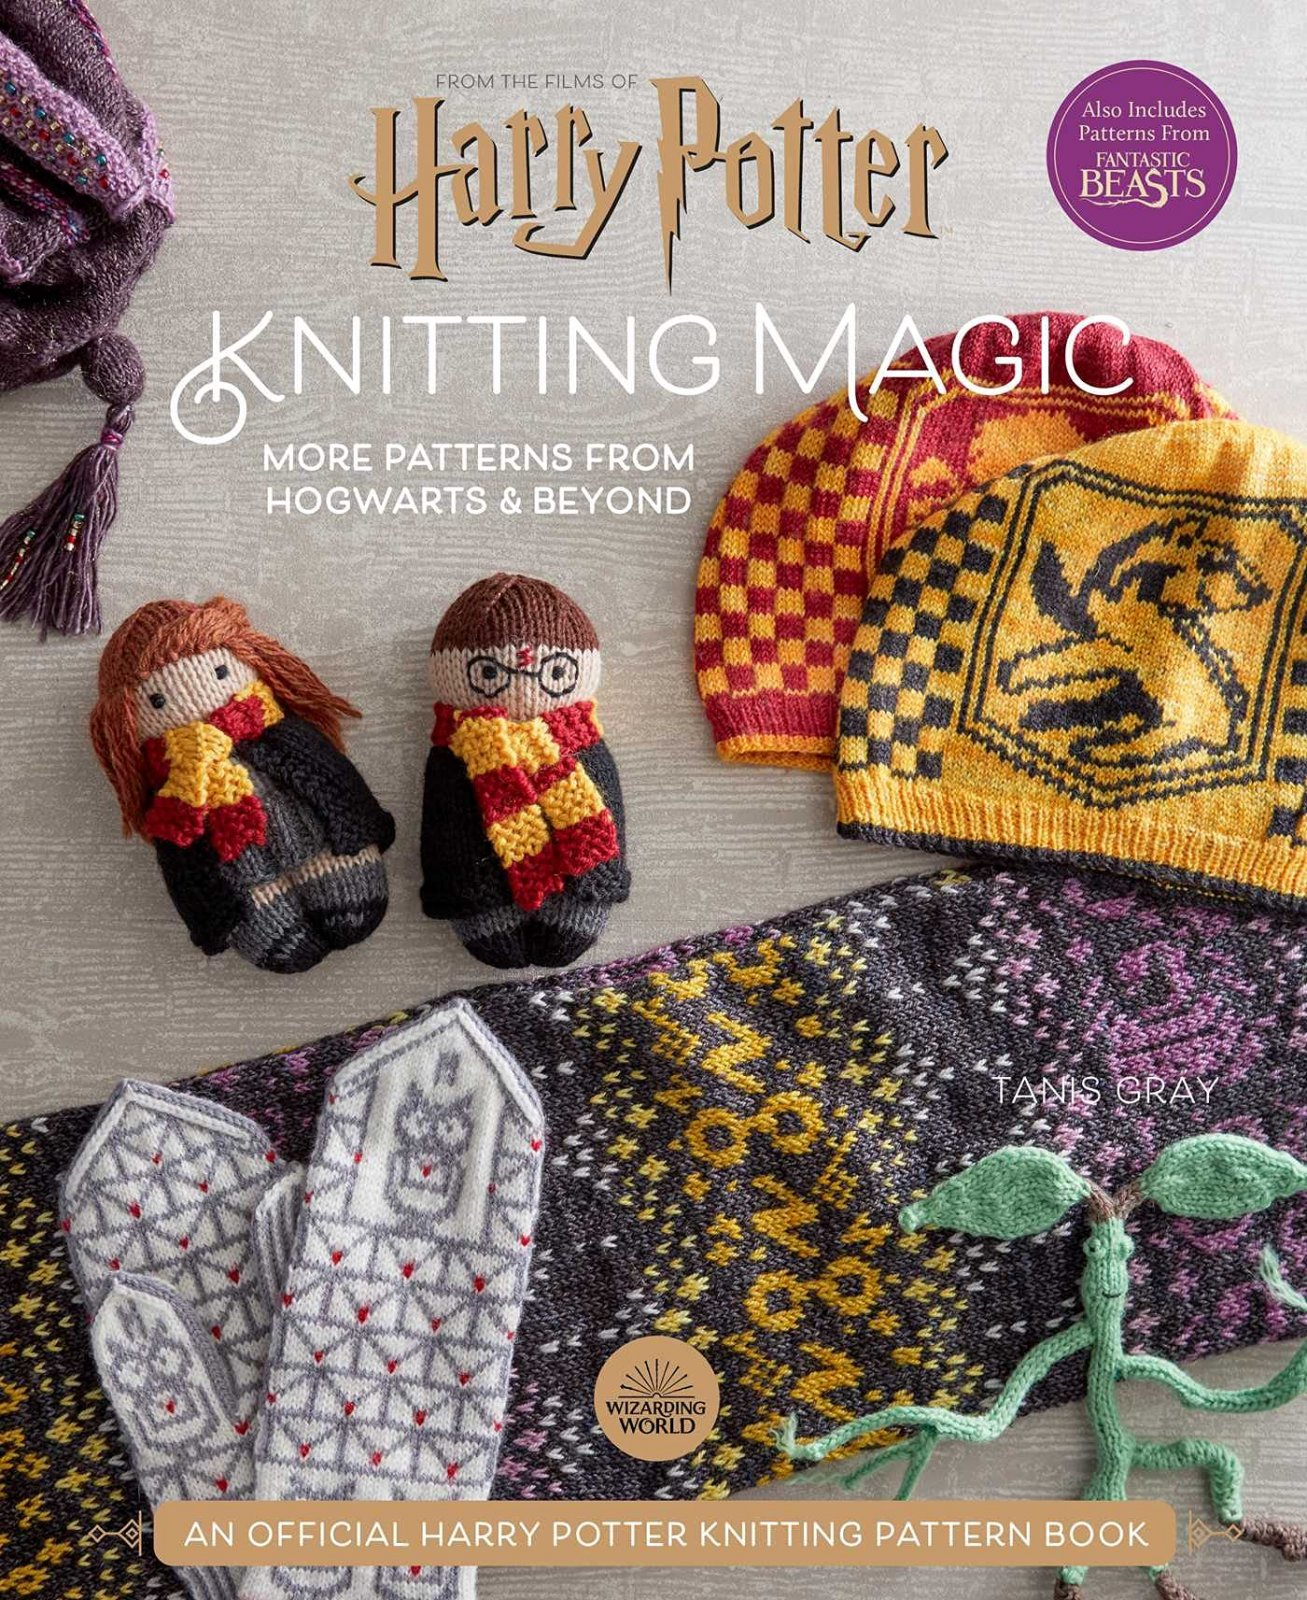 Harry Potter:  More Patterns from Hogwarts and Beyond